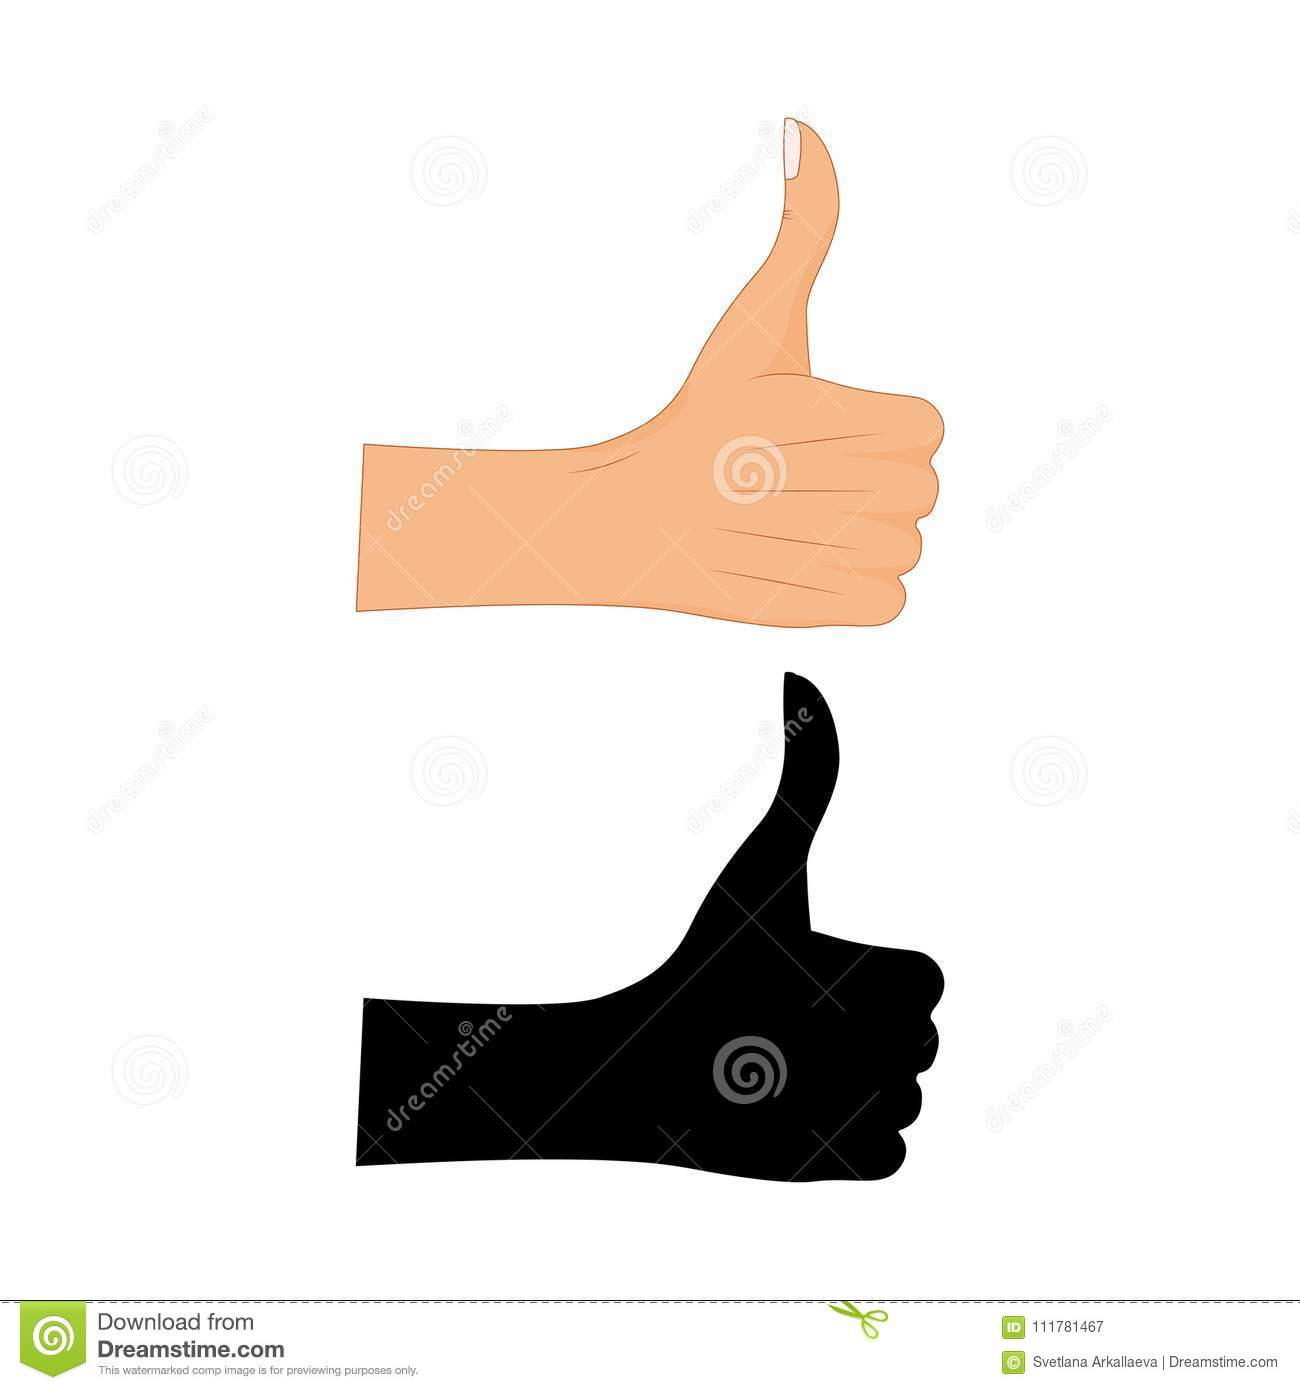 Hand thumb up sign with a black silhouette on a white background. Vector illustration. Positive feedback, good gestures